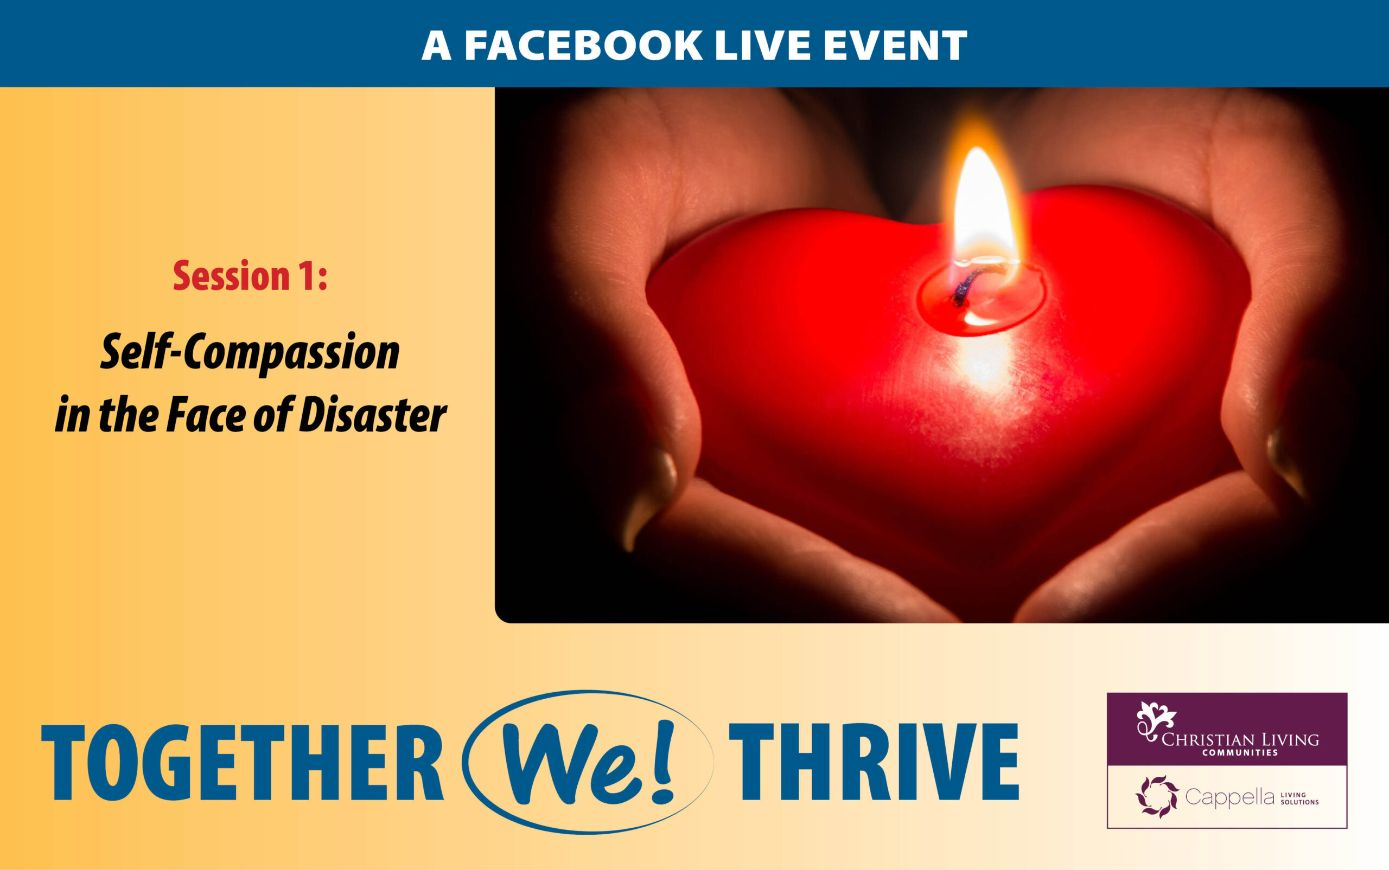 Together we thrive facebook event